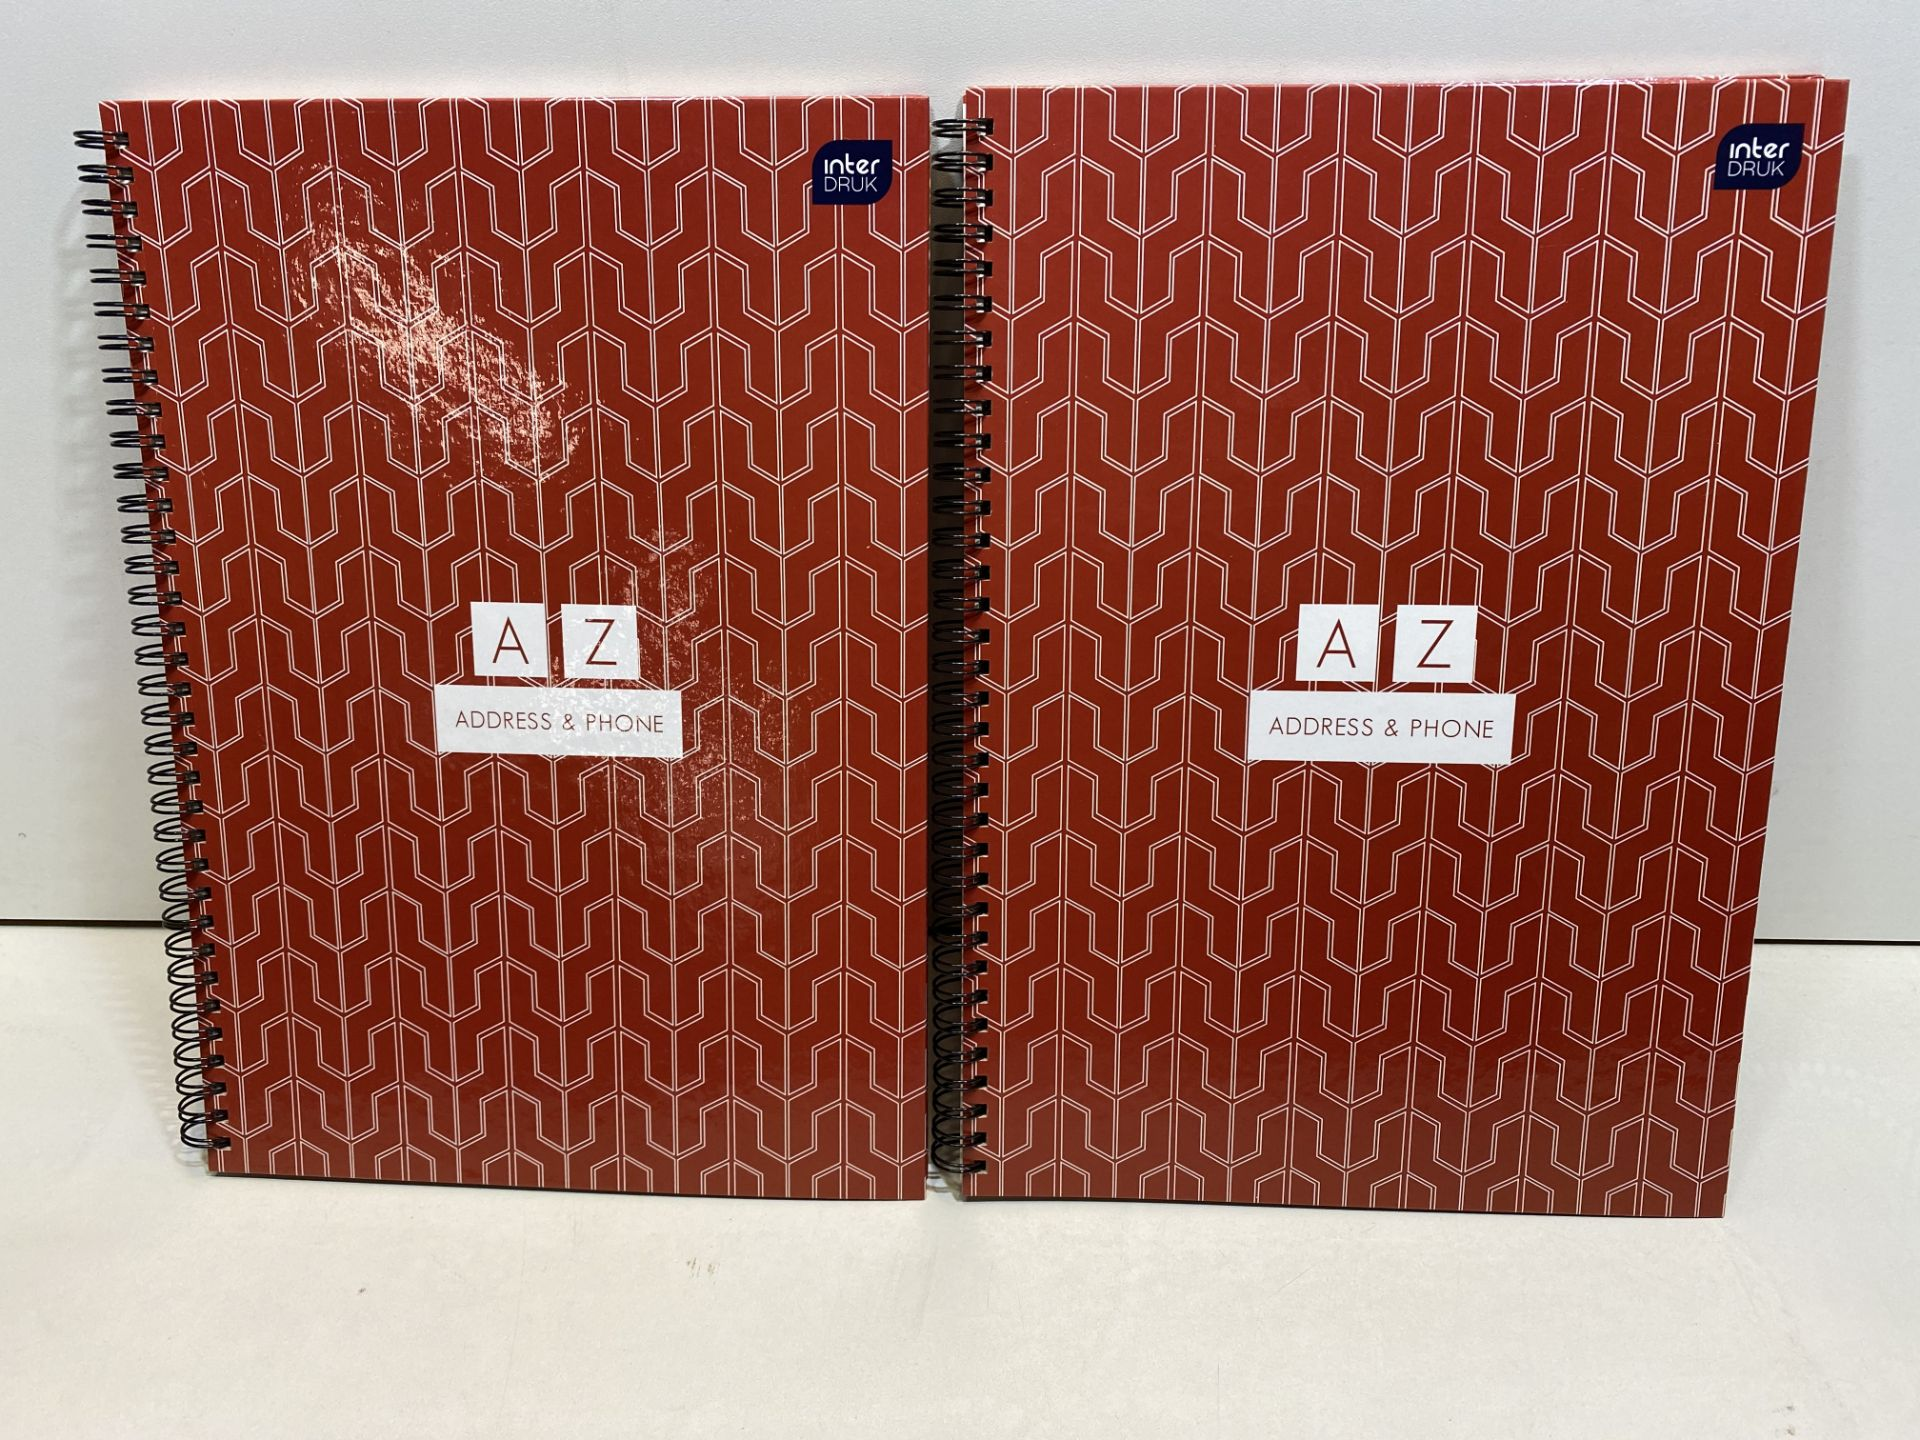 7 x Various A4 Address & Phone A-Z Notepads | 5902277171108 - Image 7 of 7